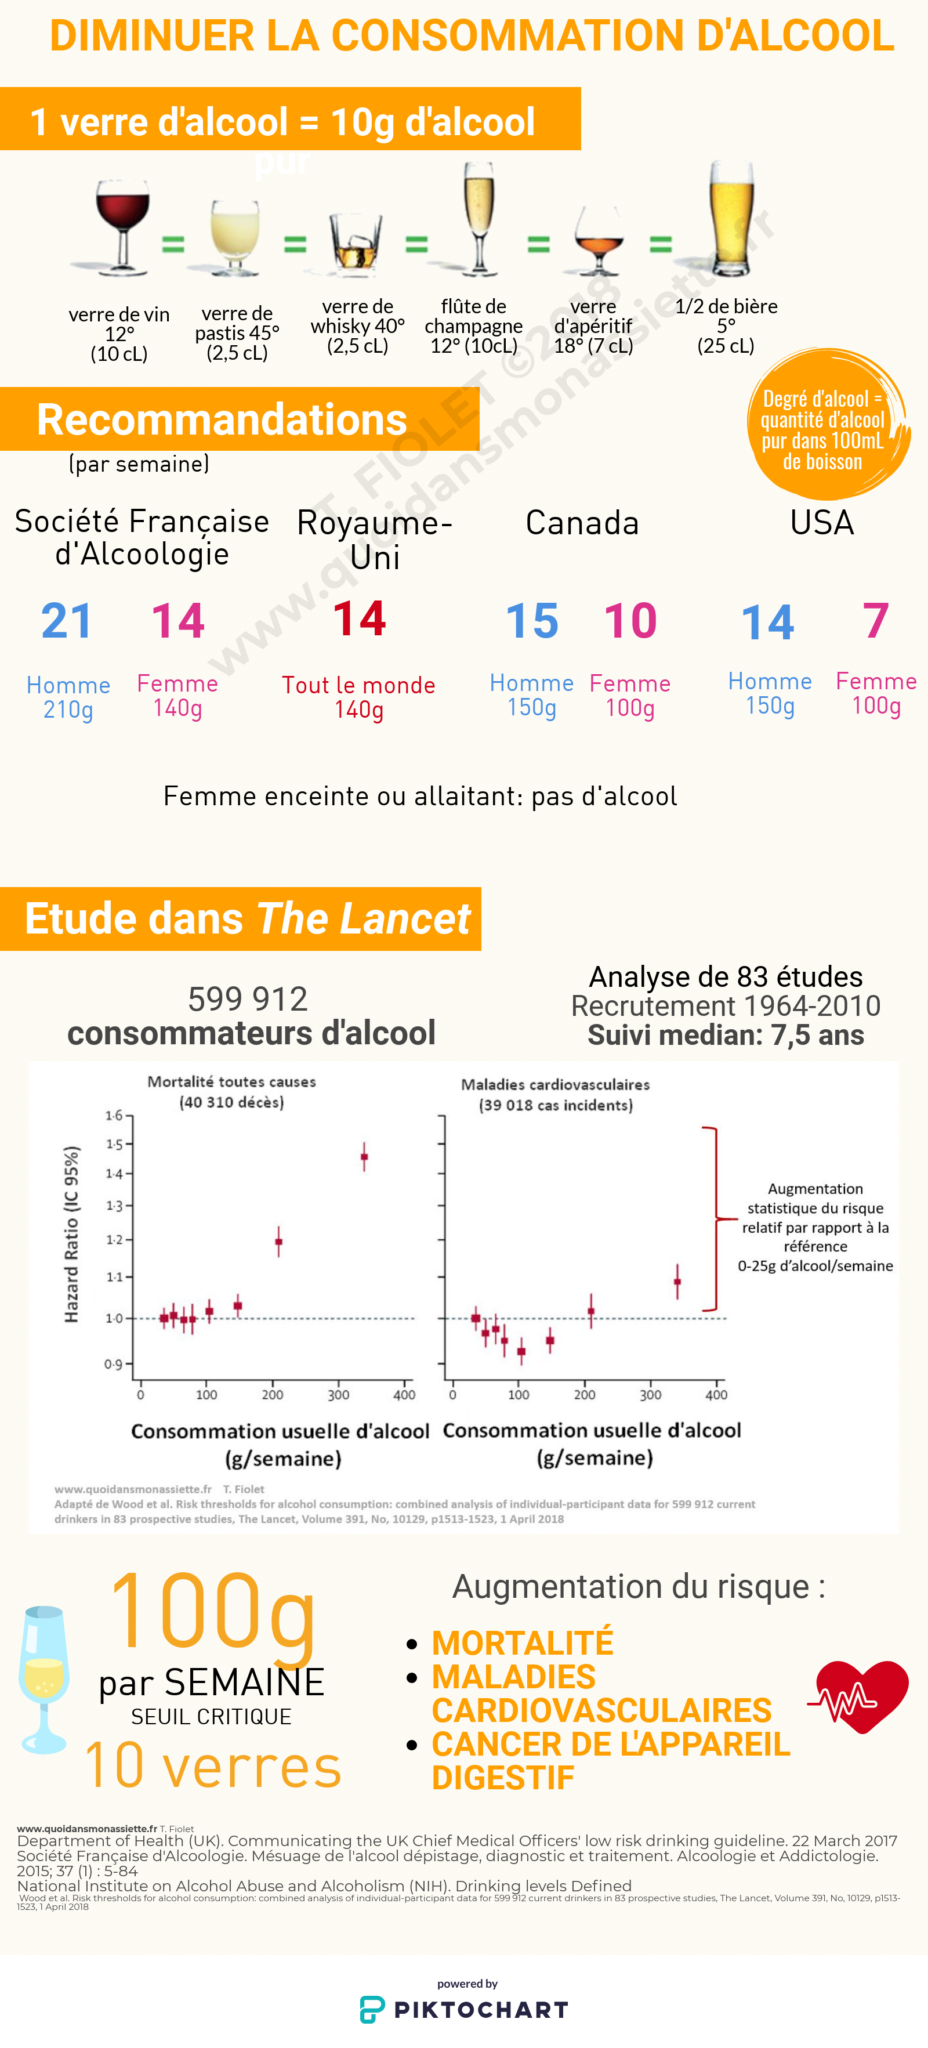 Infographie alcohol cardiovascularv disease reduire consommation alcool FInfographie alcohol cardiovascularv disease reduire consommation alcool F